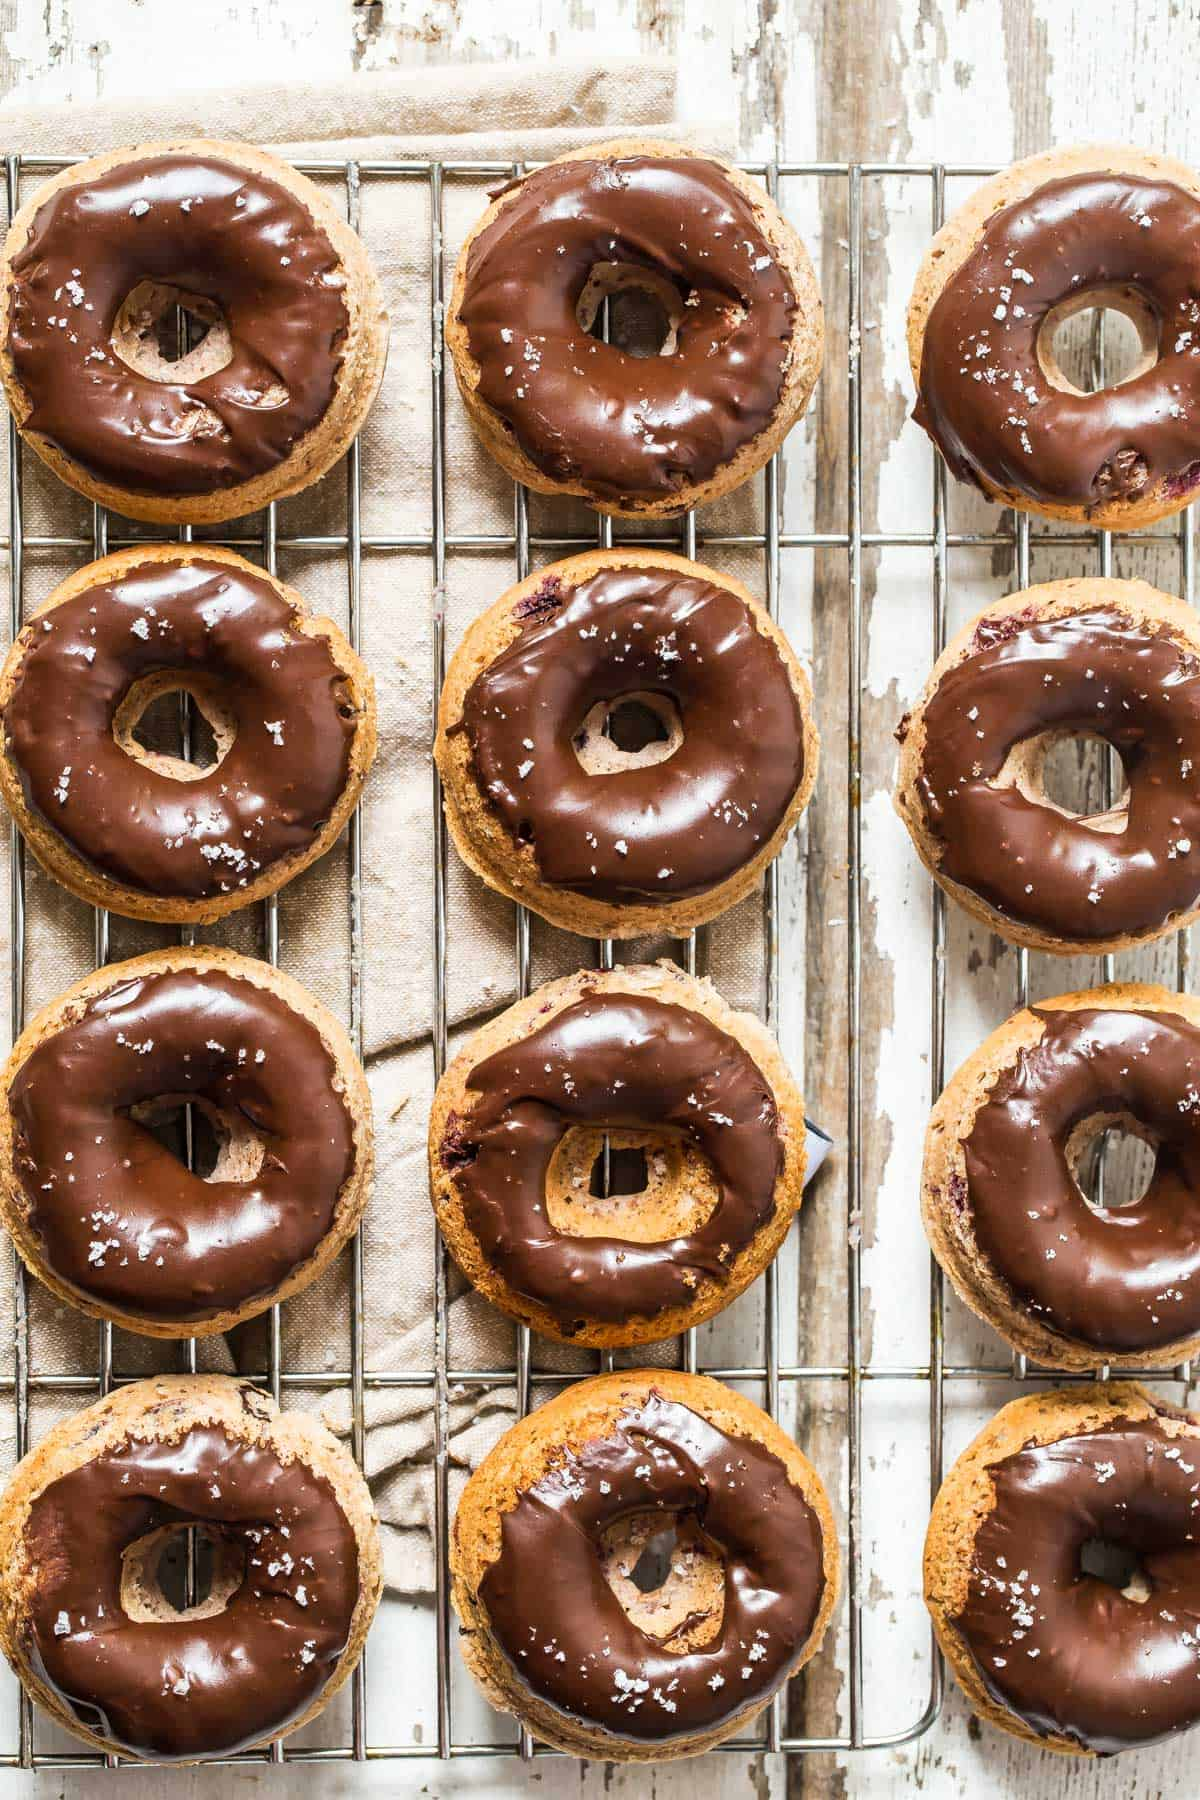 Homemade cherry and chocolate glazed baked donuts sprinkled with sea salt. The same sweet taste as fried but less mess.